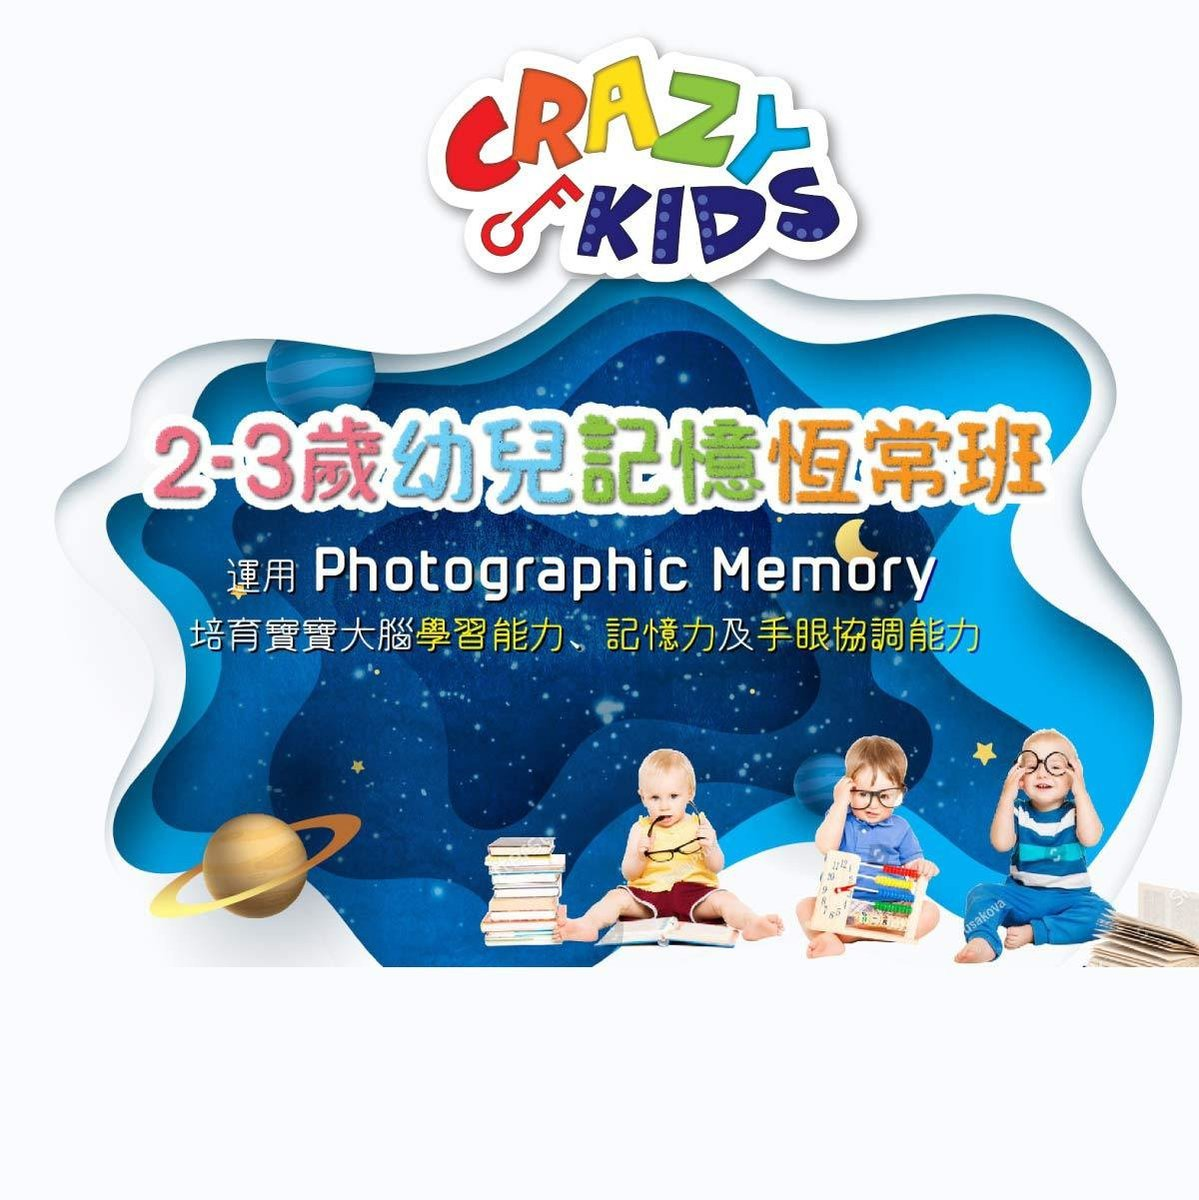 5 Session - Infant Memory Course (Aged 2-3)